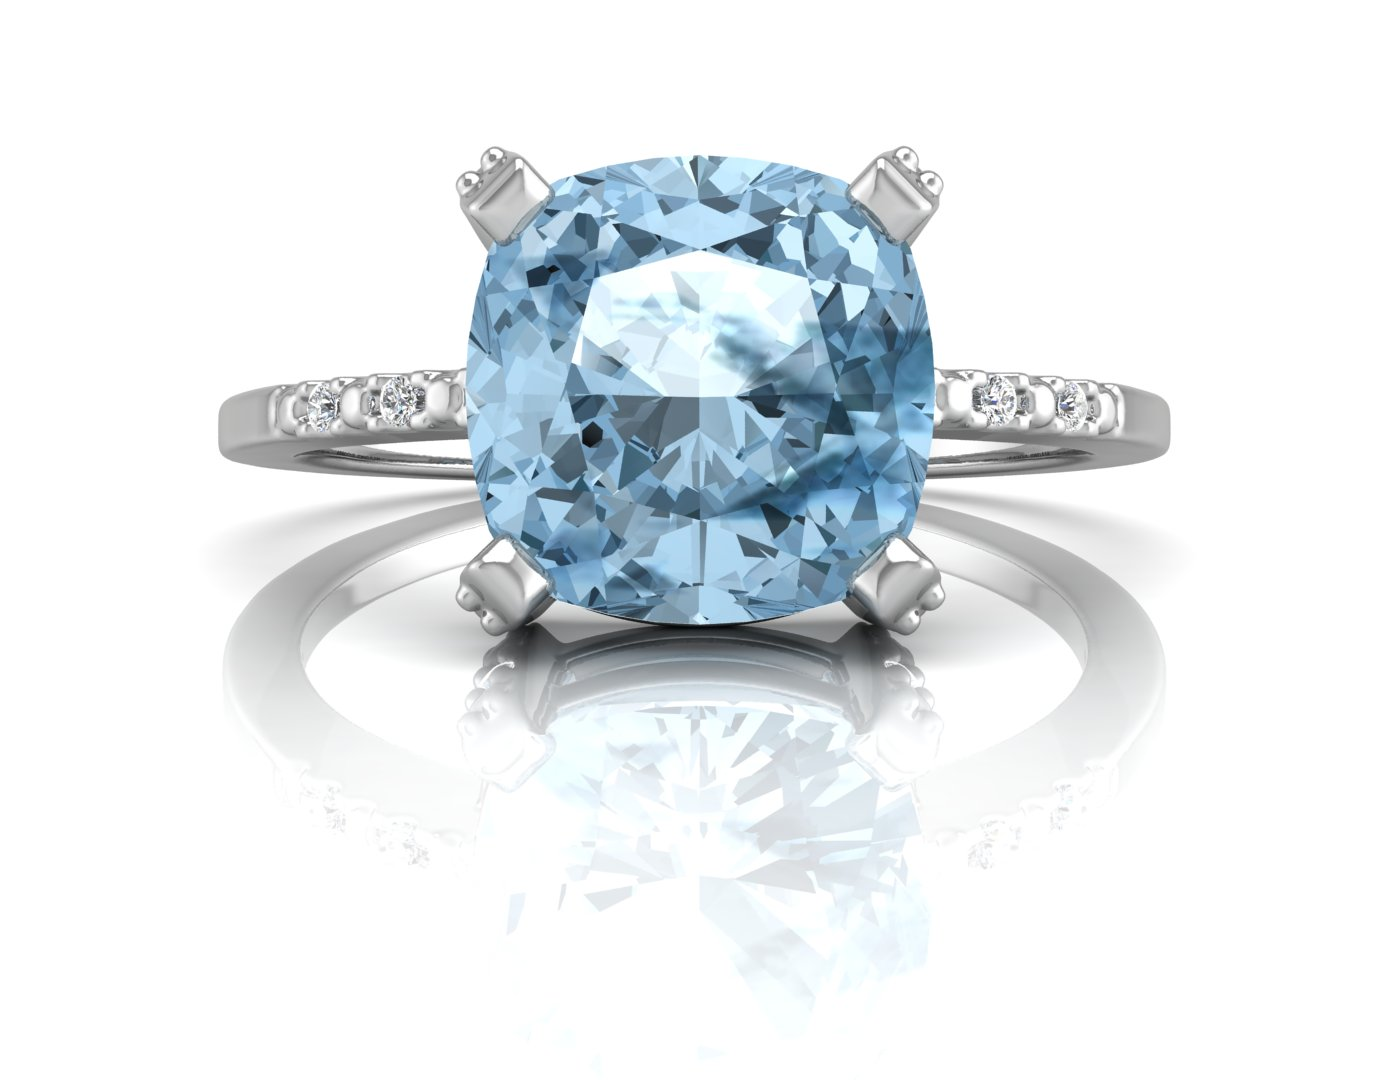 Lot 48 - 9ct White Gold Diamond And Blue Topaz Ring 0.04 Carats